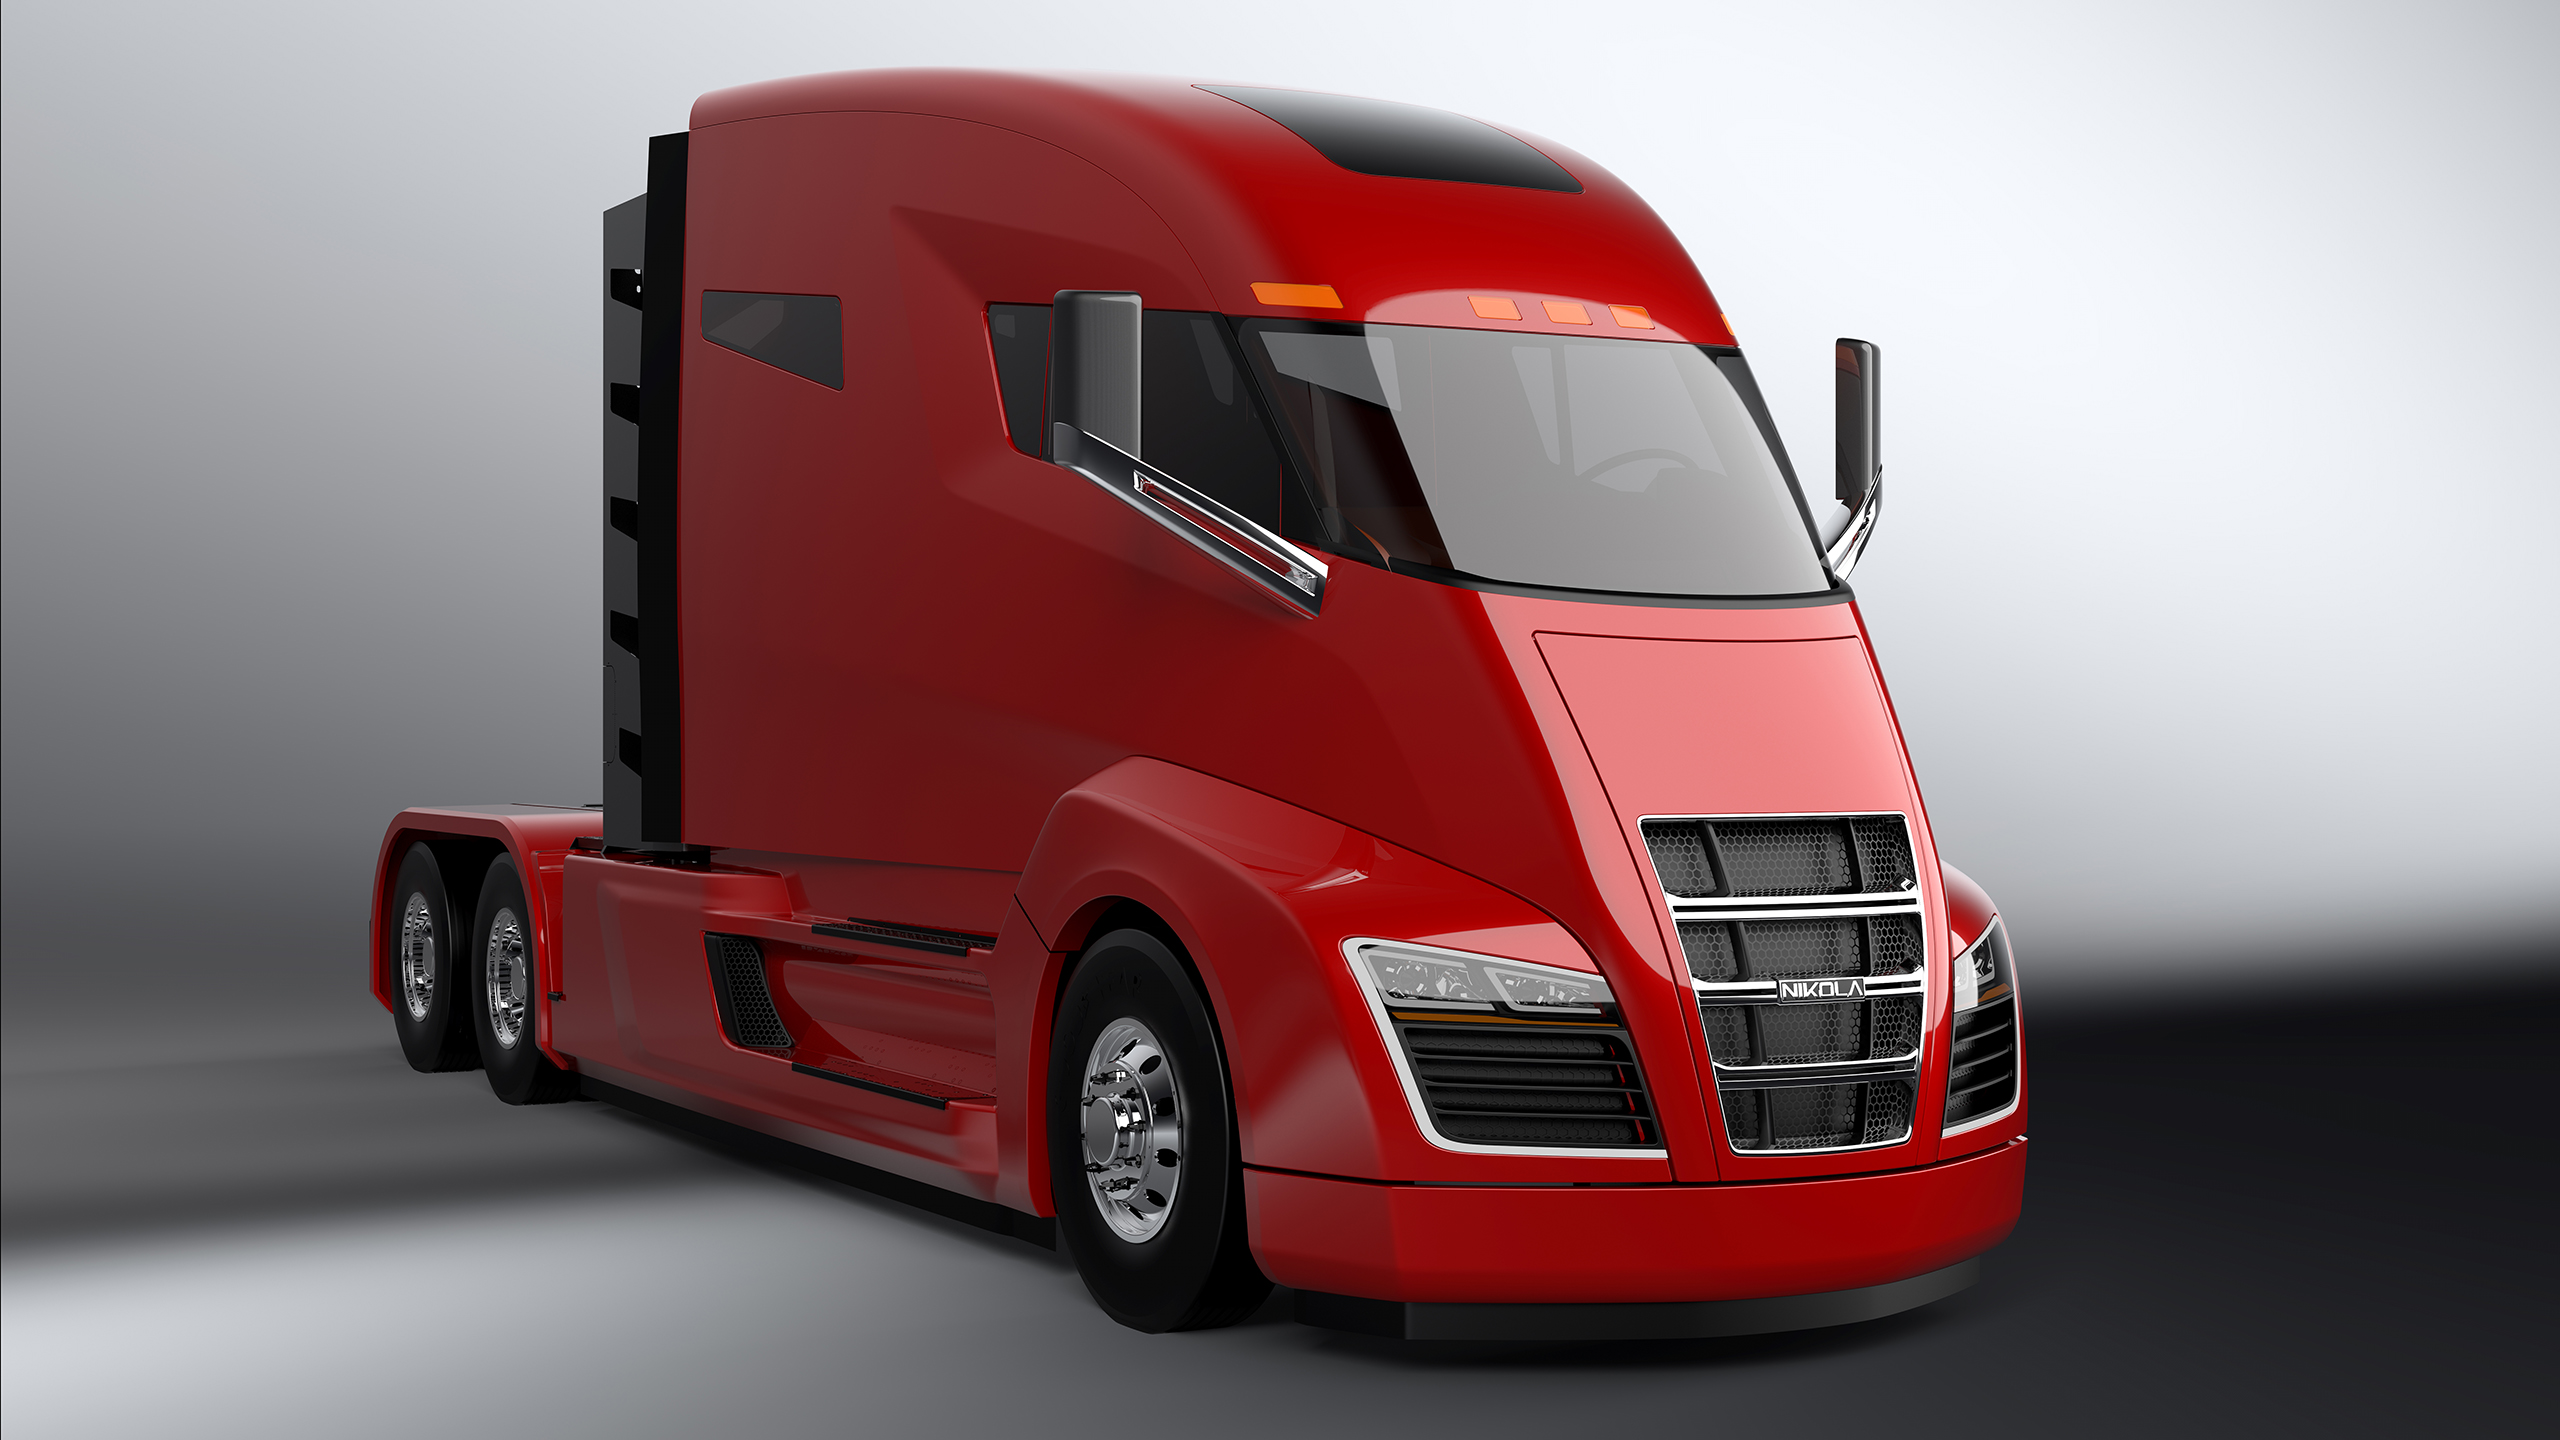 Nikola Motor Company wants to be the Tesla of trucking